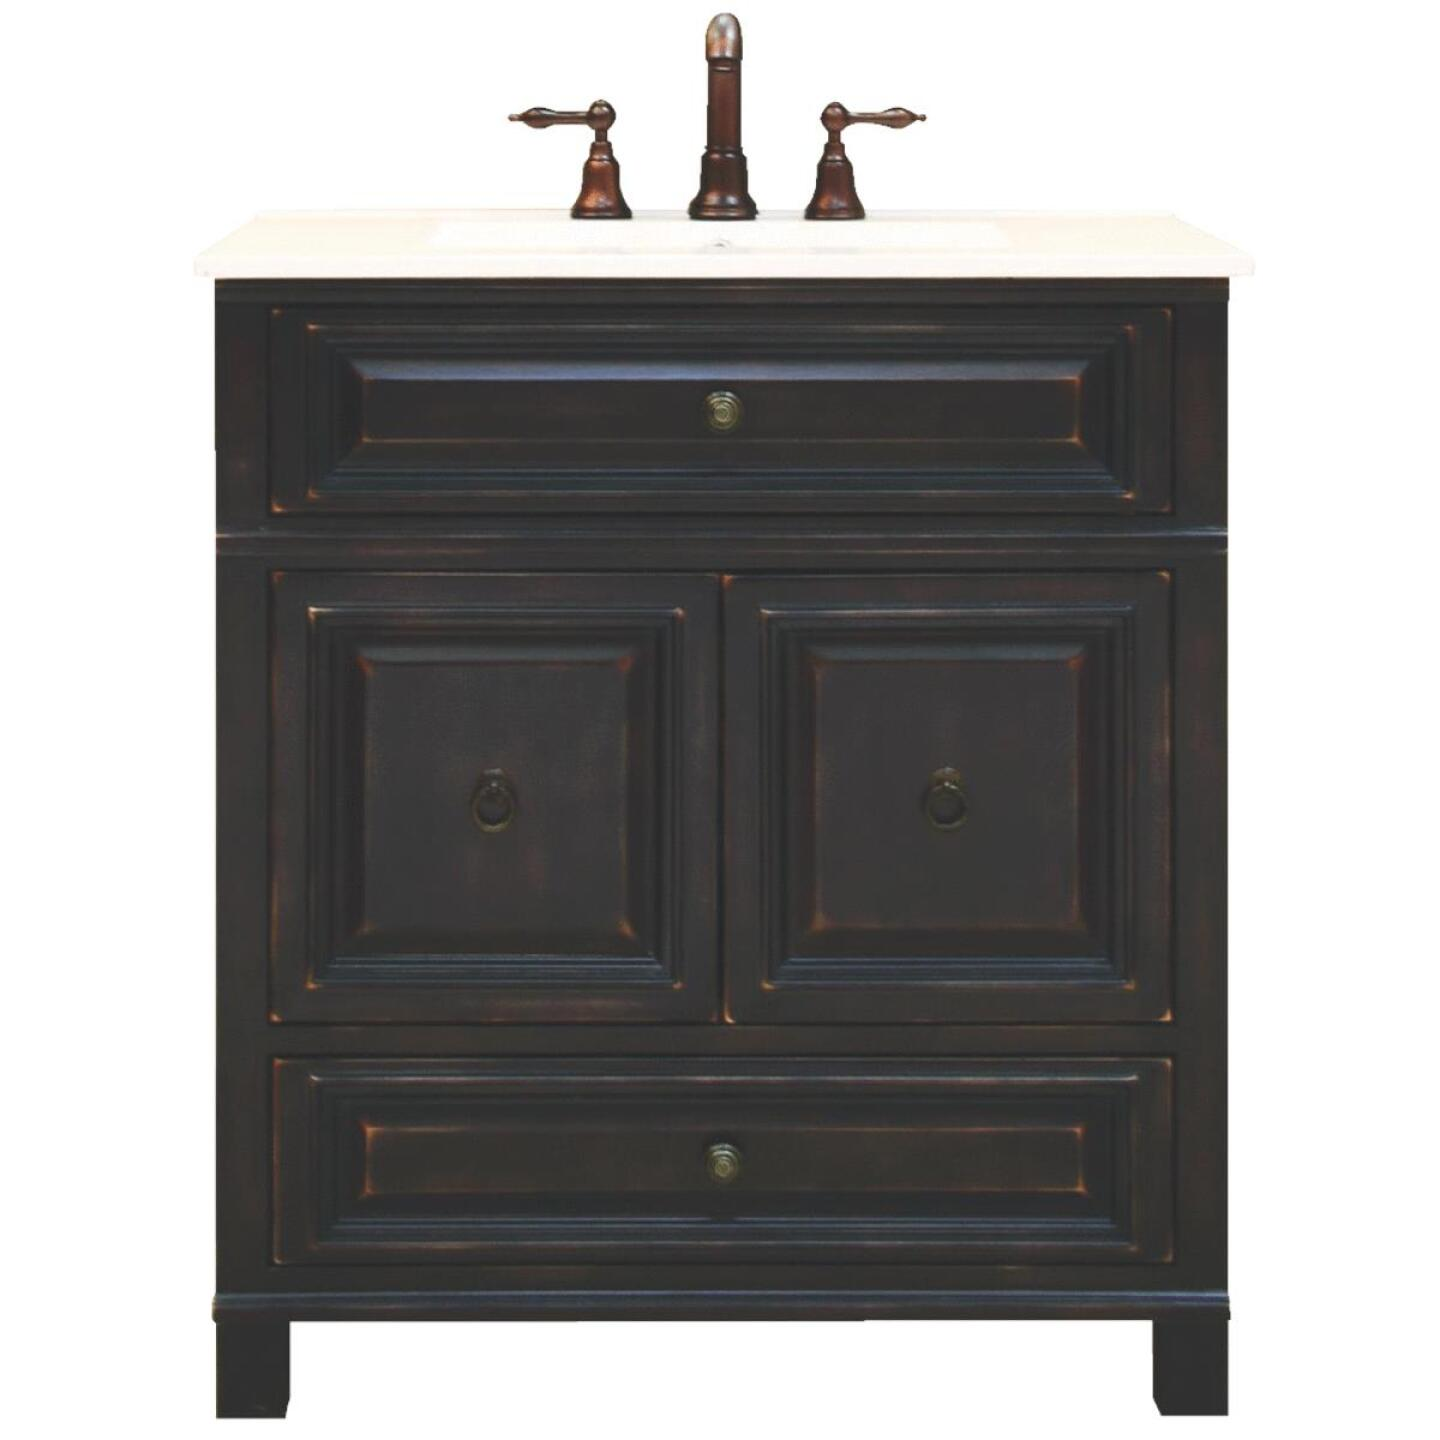 Sunny Wood Barton Hill Black Onyx 30 In. W x 34 In. H x 21 In. D Vanity Base, 2 Door/1 Drawer Image 250